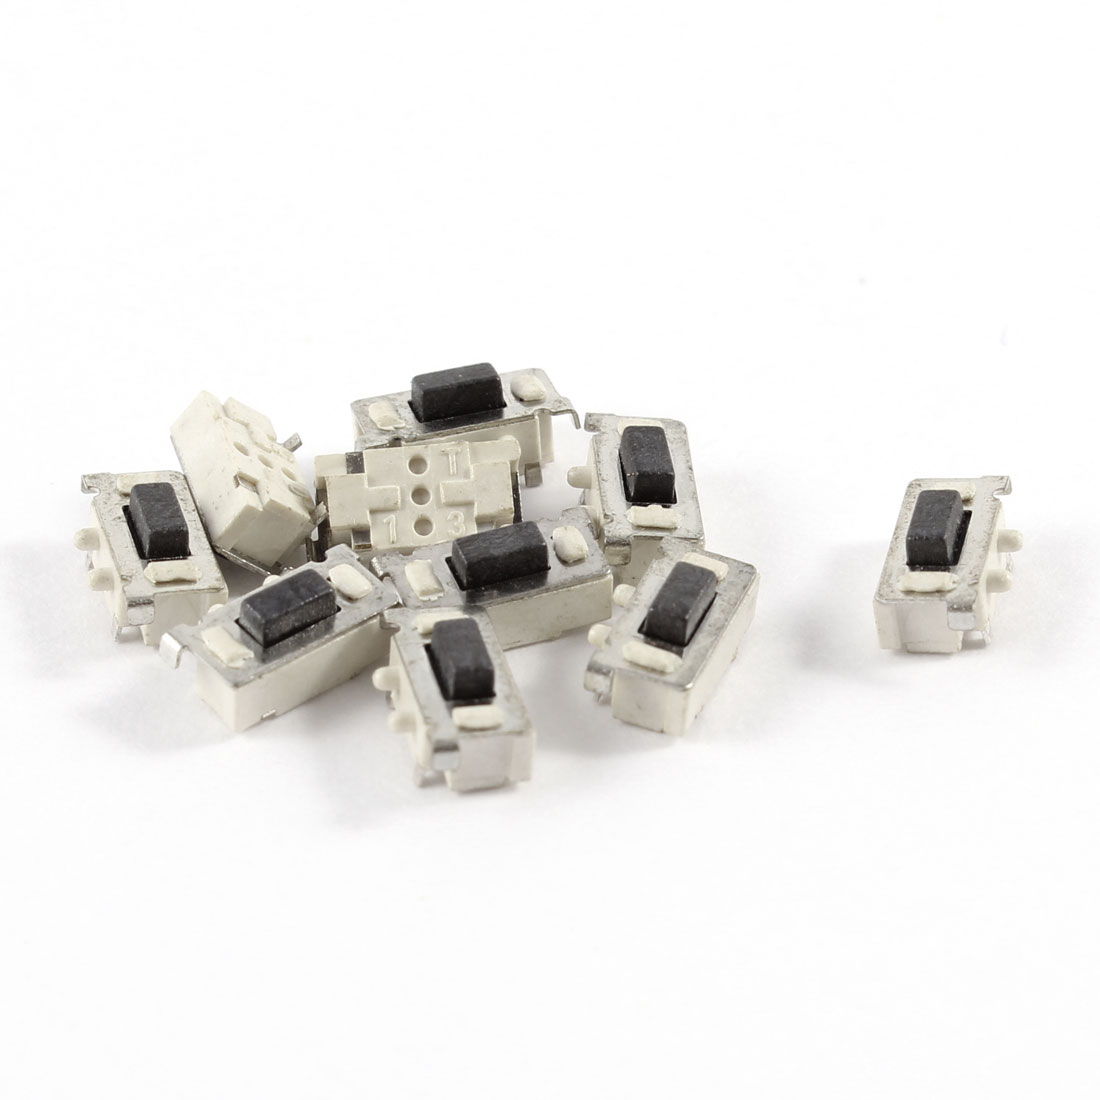 10 Pcs 6x3.5x3.5mm Momentary Push Button SMD SMT Tactile Tact Switch